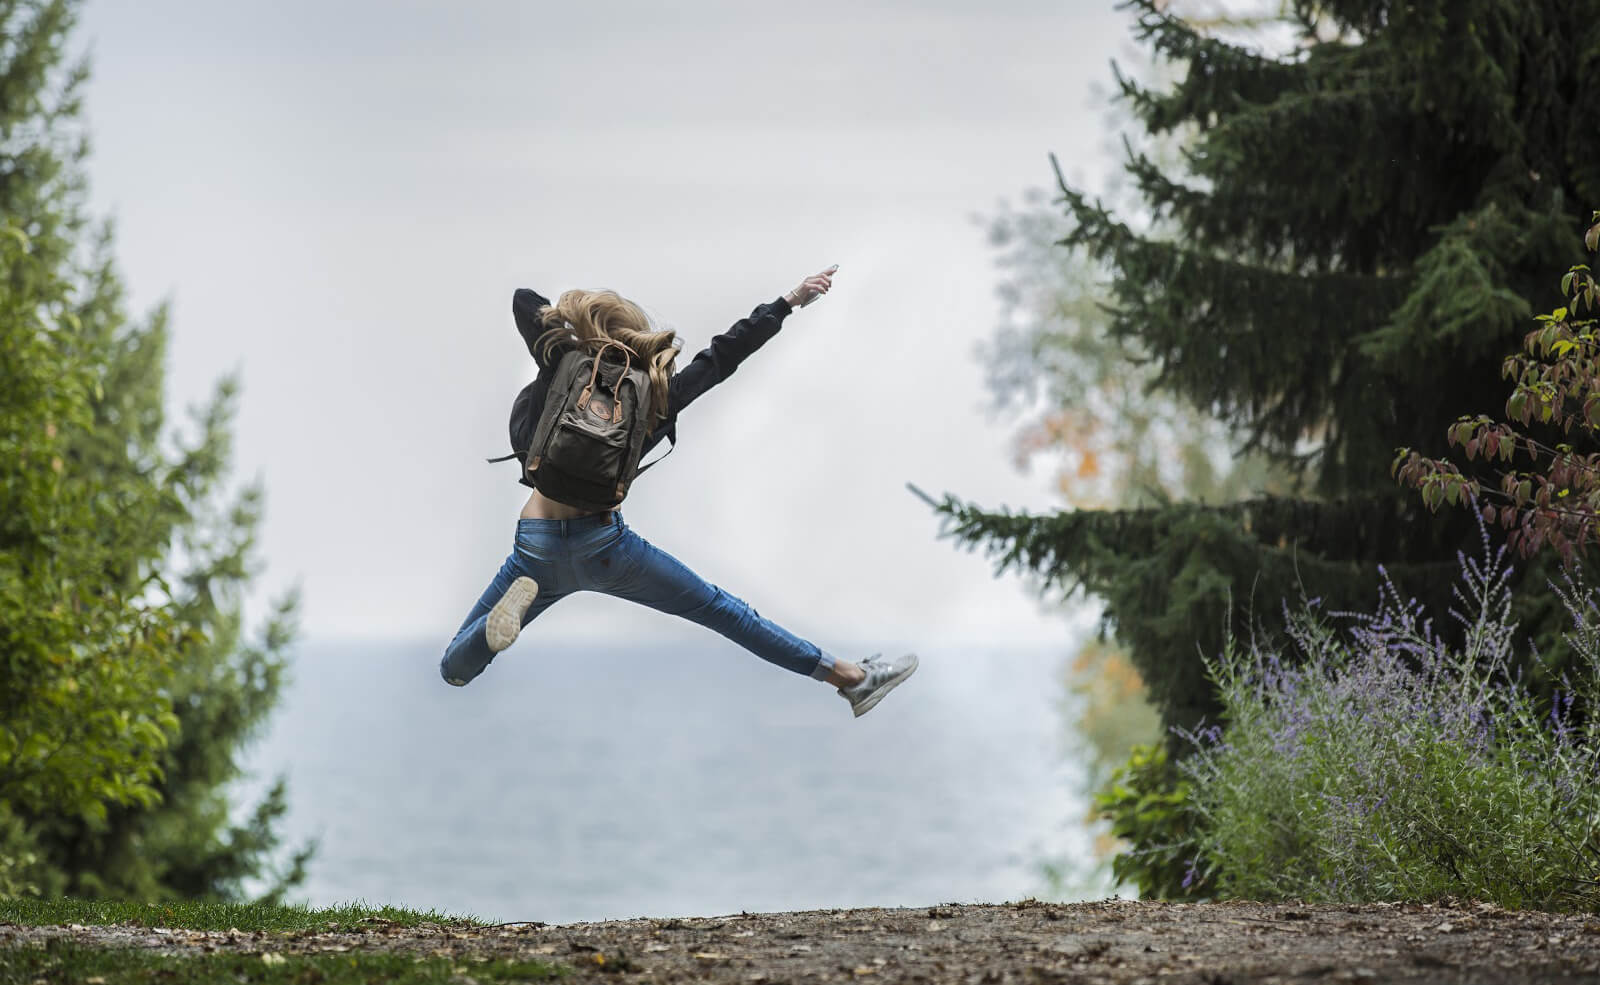 Very happy client jumping for joy